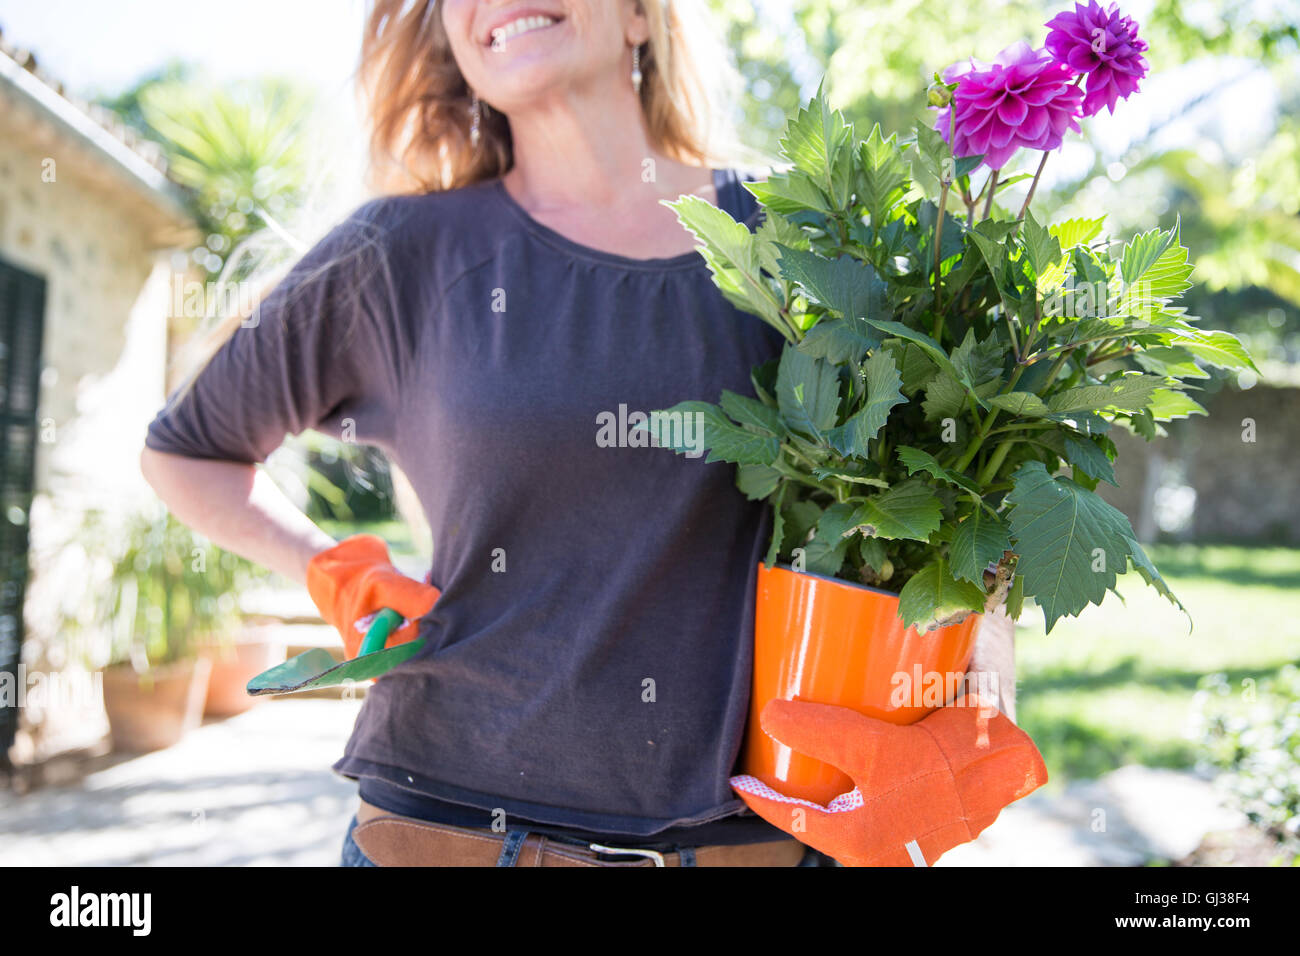 Woman carrying purple flowering plant in garden - Stock Image